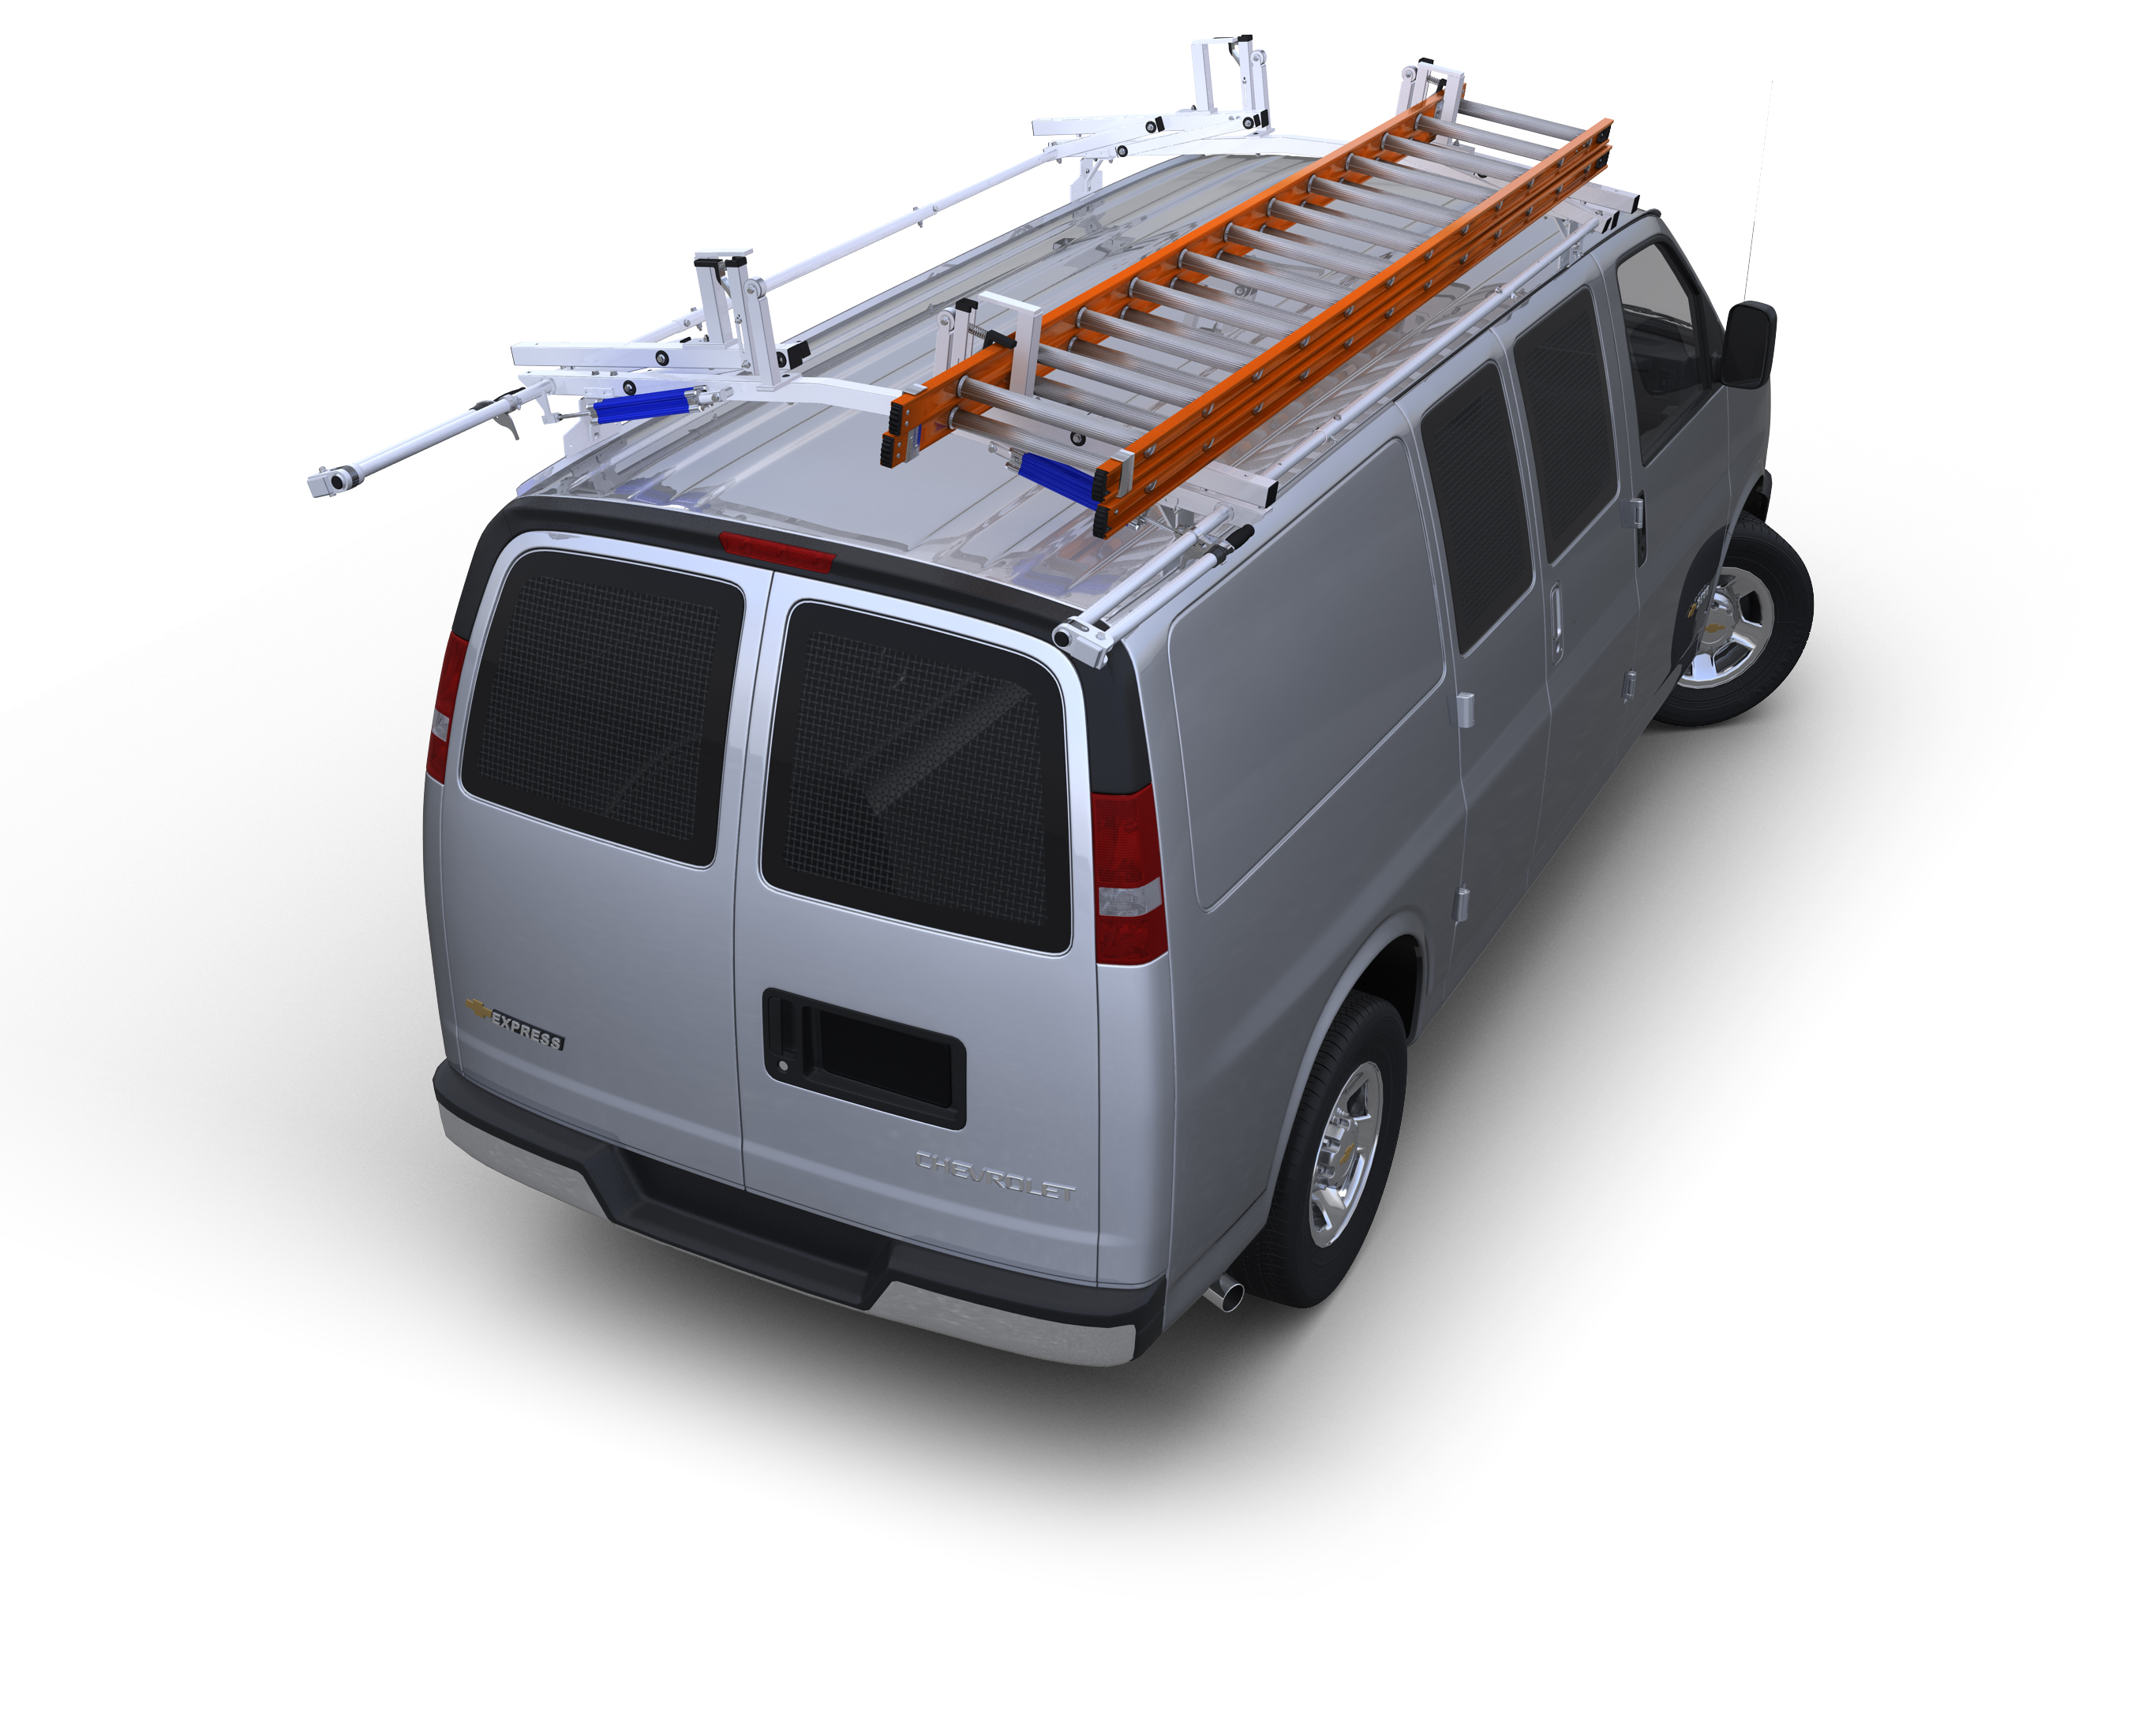 Cab File Desk - For Transit, ProMaster and Sprinter Vans